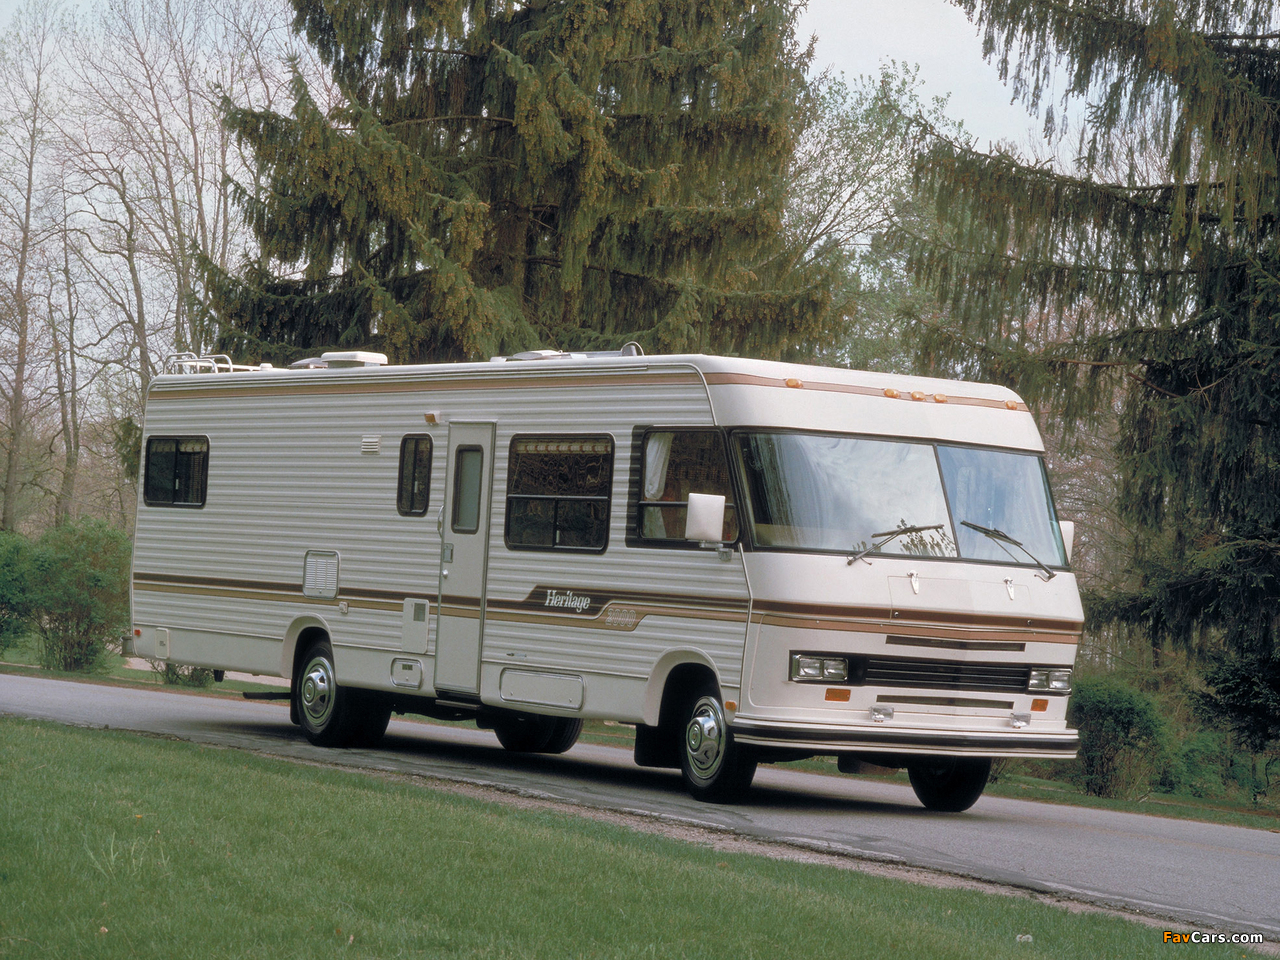 Images of Chevrolet Heritage 2000 Motorhome 1985 (1280 x 960)